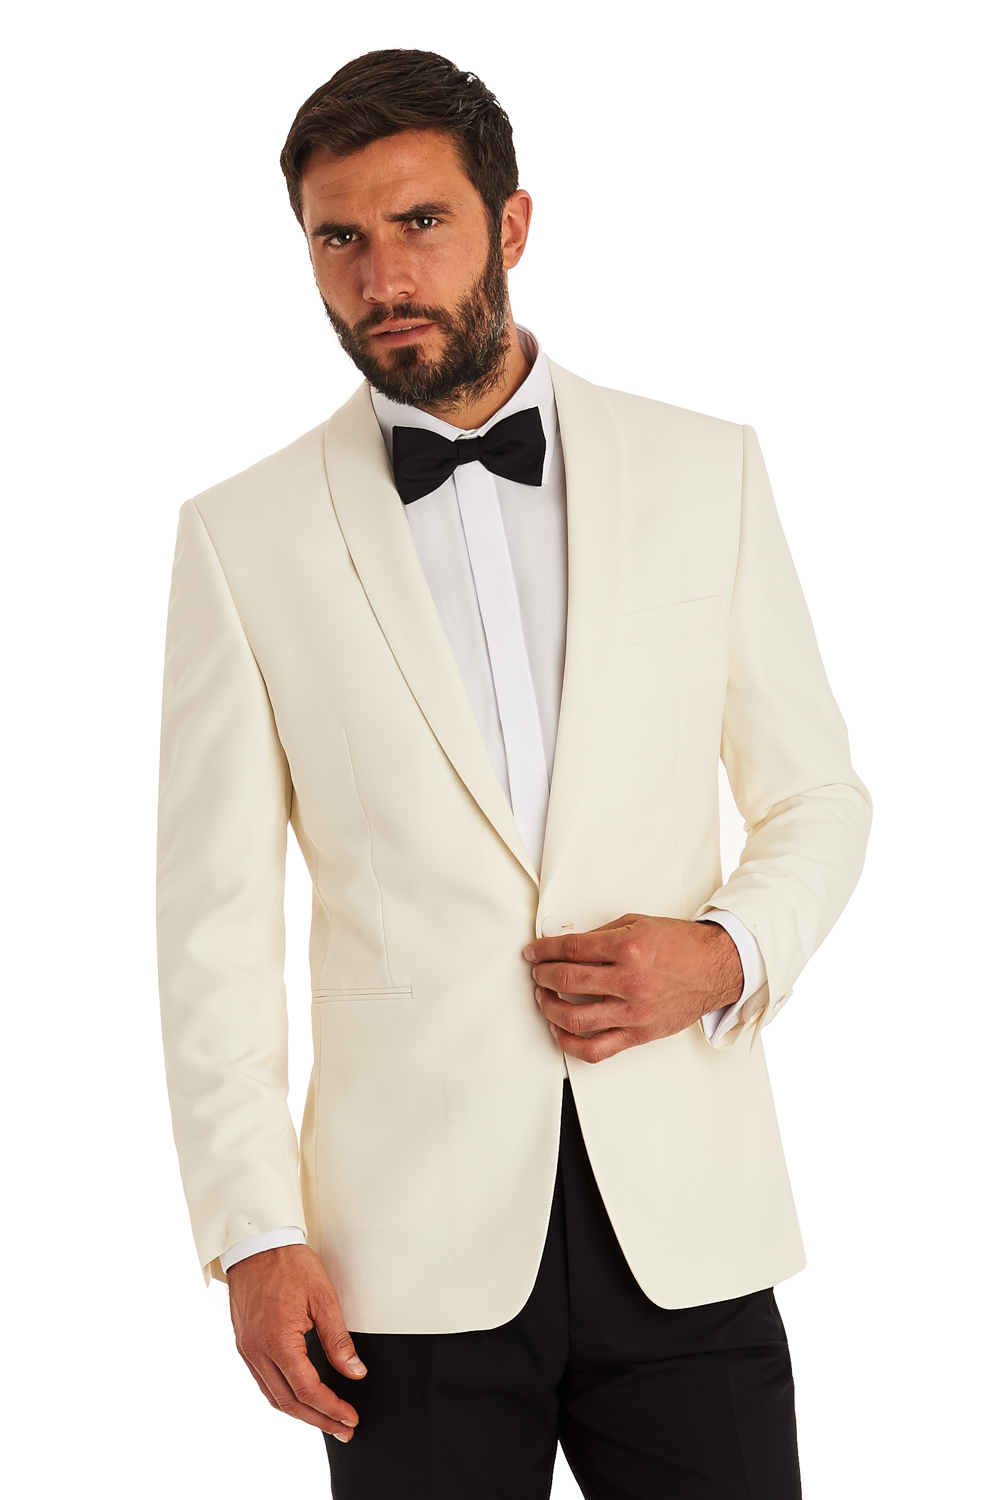 Men's Savile Row Slim-Fit White Tuxedo Jacket, Size: 34 Short. Best prices on Mens short jacket tuxedo in Men's Suits / Sportcoats online. Visit Bizrate to find the best deals on top brands. Read reviews on Clothing & Accessories merchants and buy with confidence.